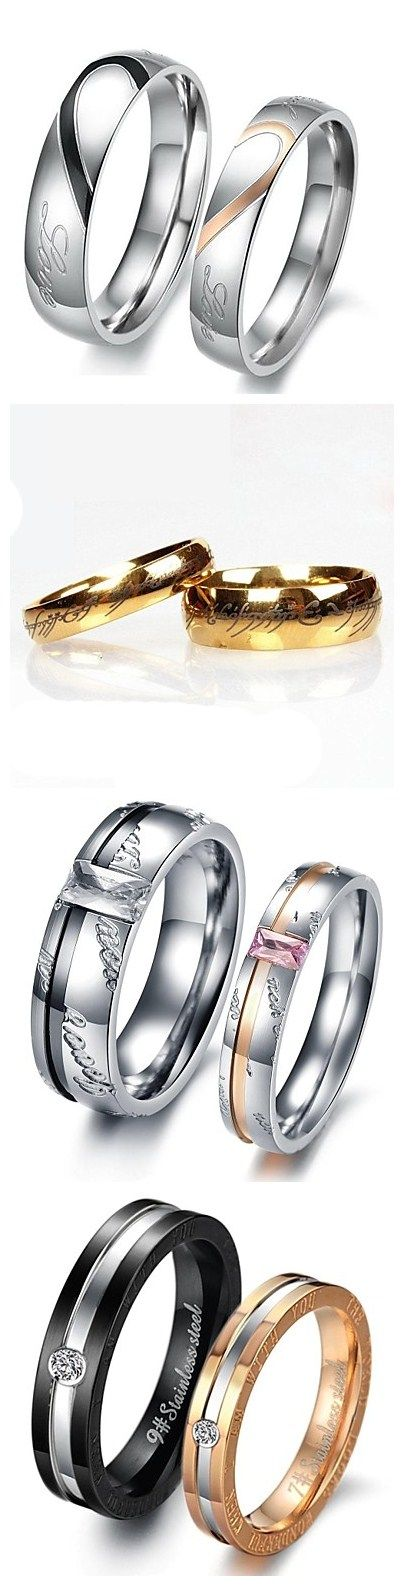 Show your love off with matching rings! Which set is your style? Click for more styles.